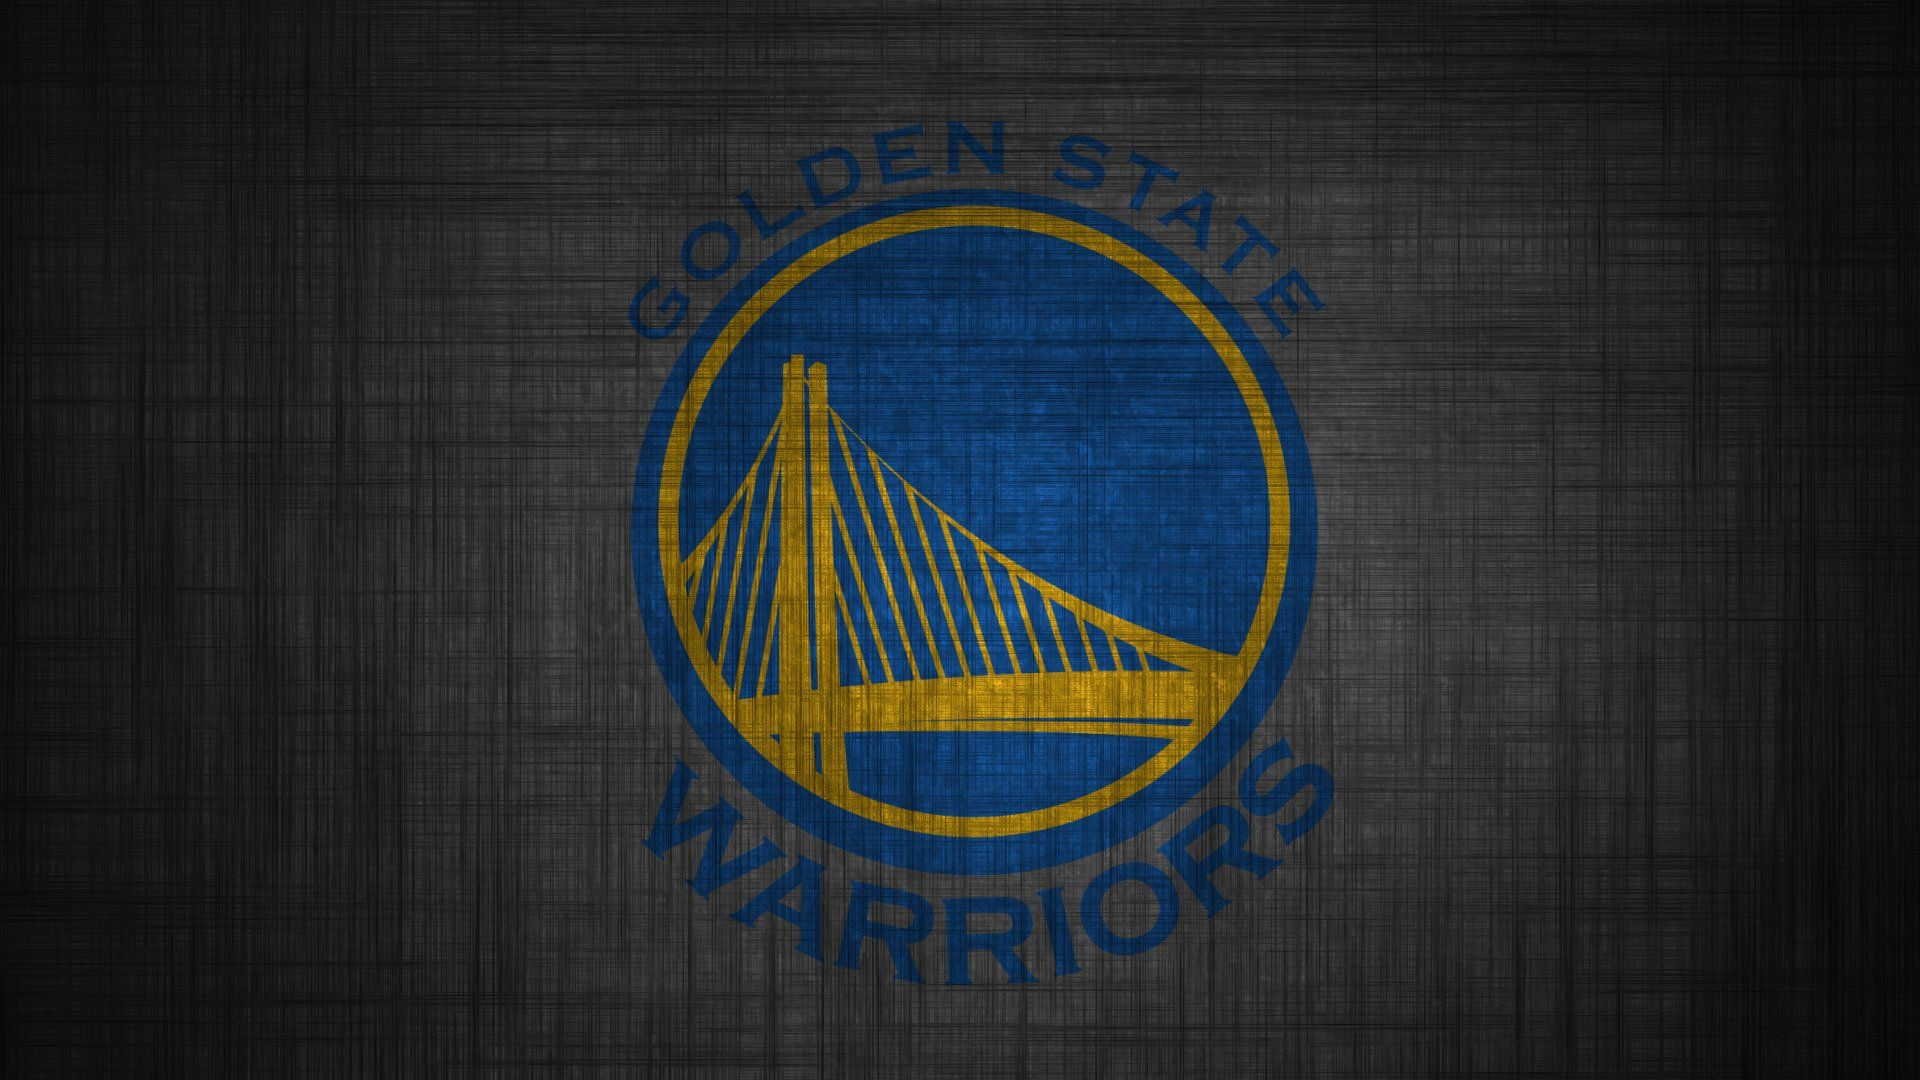 Golden State Warriors Logo Wallpaper Hd Wallpapers 1080p Golden State Warriors Wallpaper Golden State Warriors Logo Warriors Wallpaper